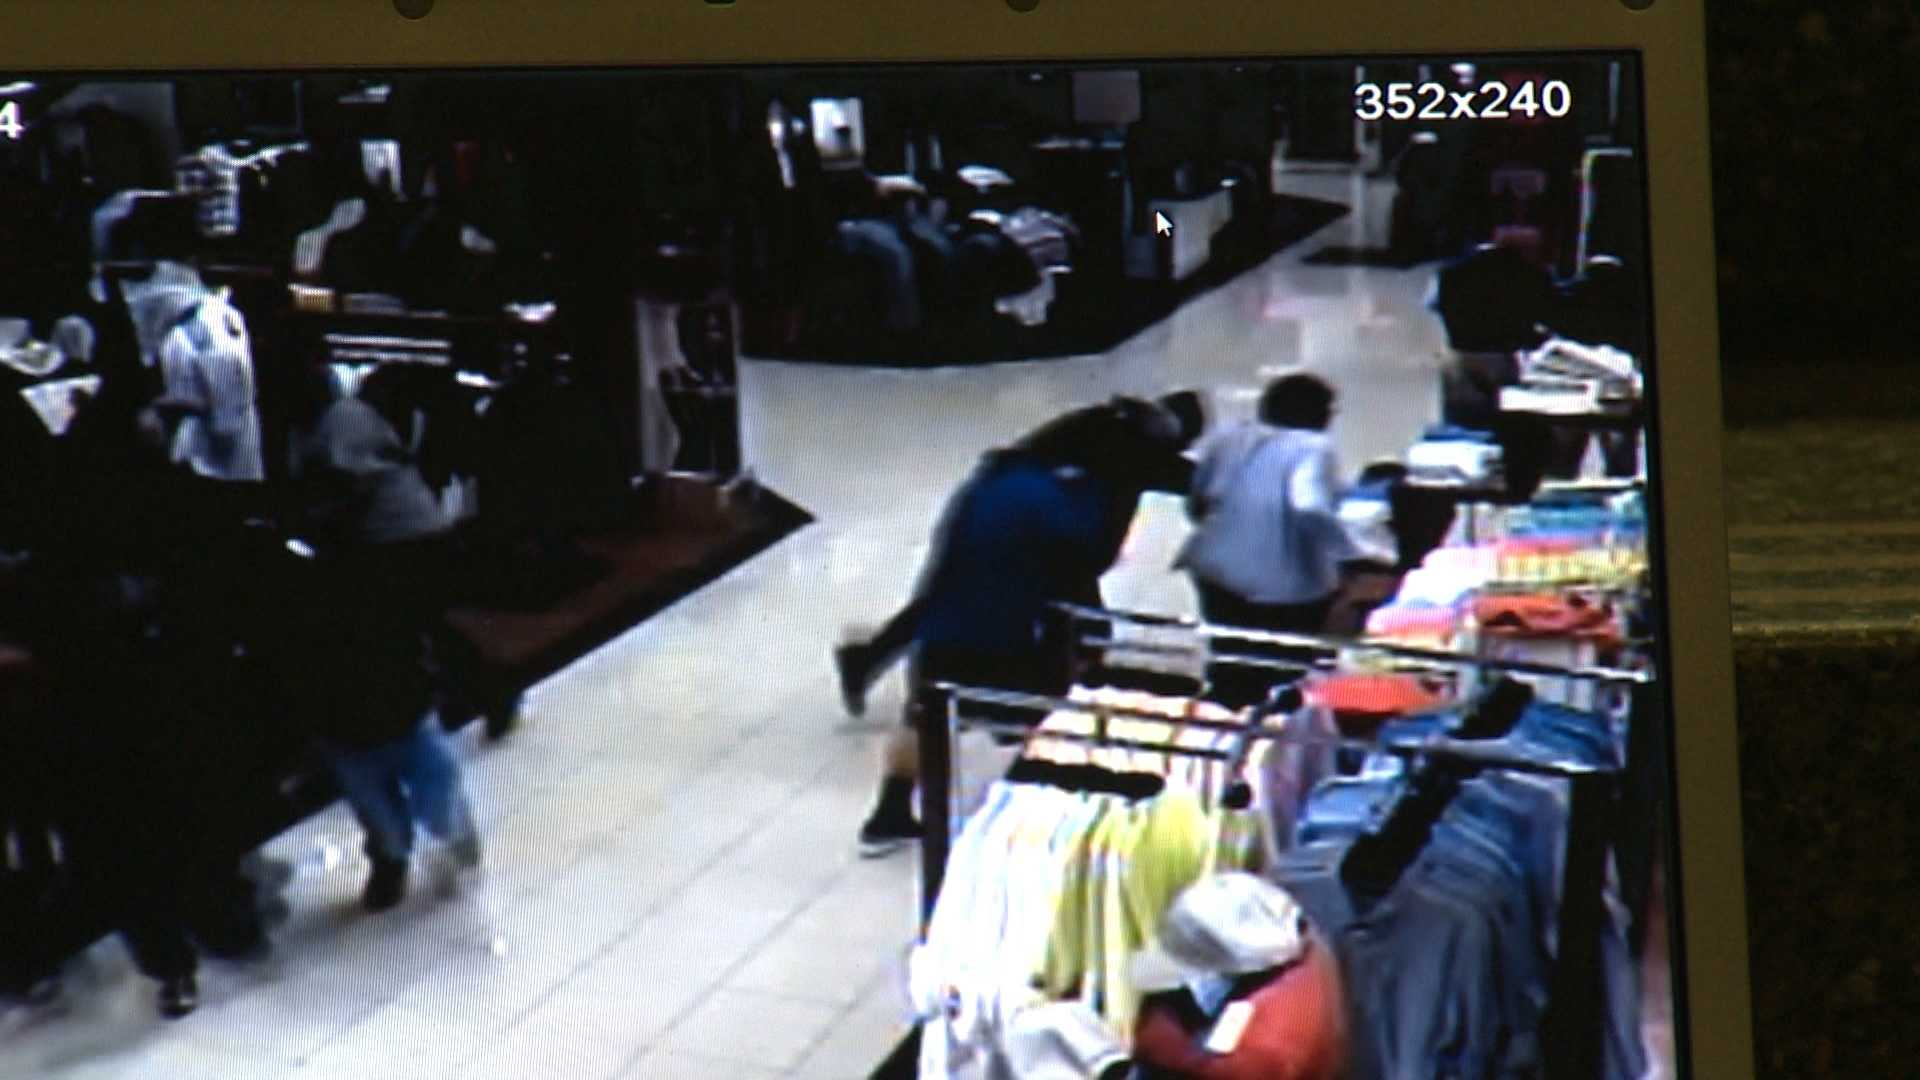 Surveillance image of Monroeville Mall shooting